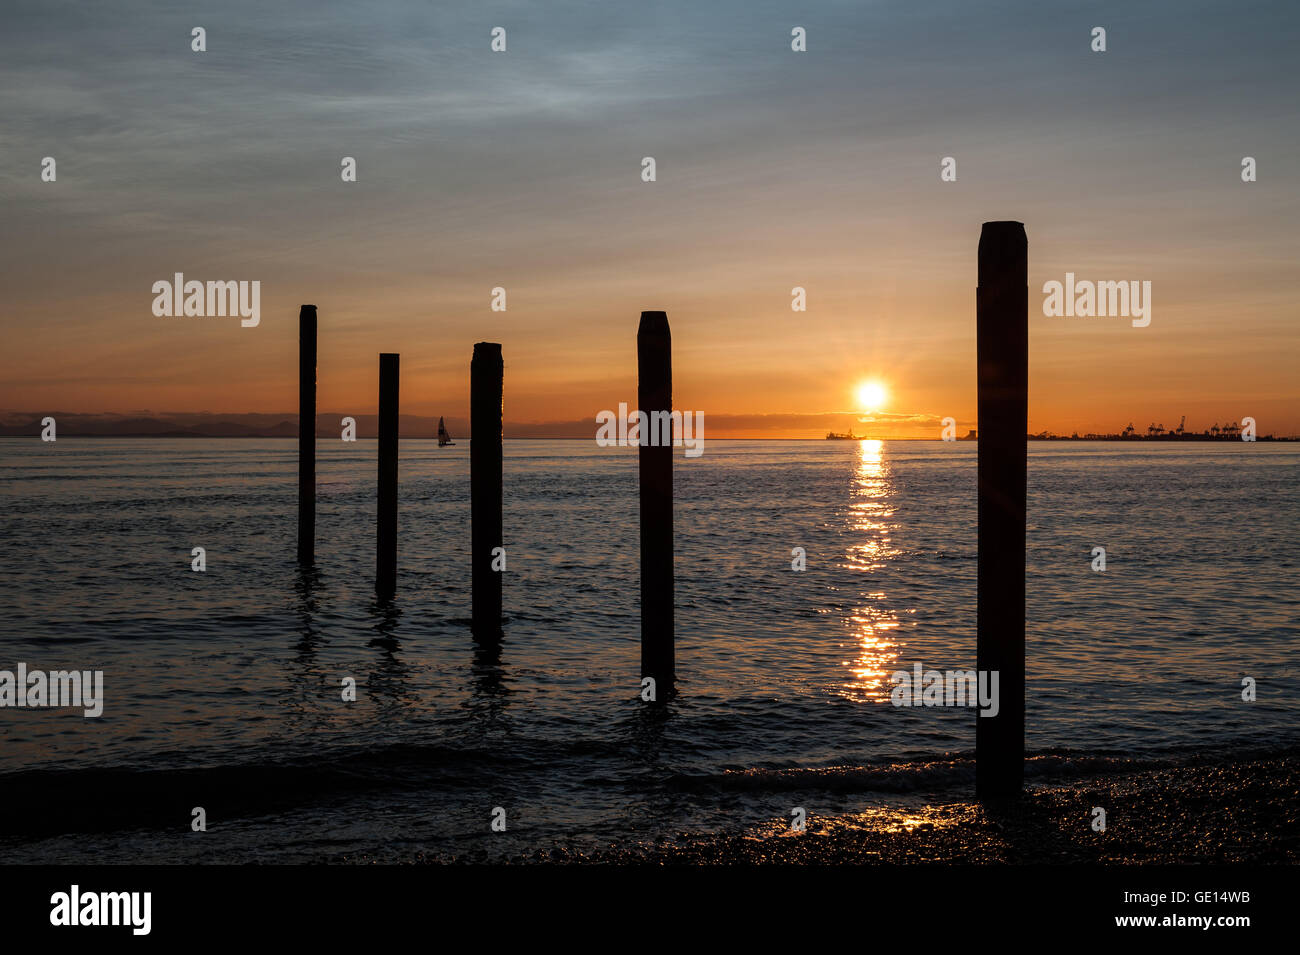 sail boat on the Pacific ocean at sunset in Point Roberts, with posts on foreground, Washington state, USA - Stock Image